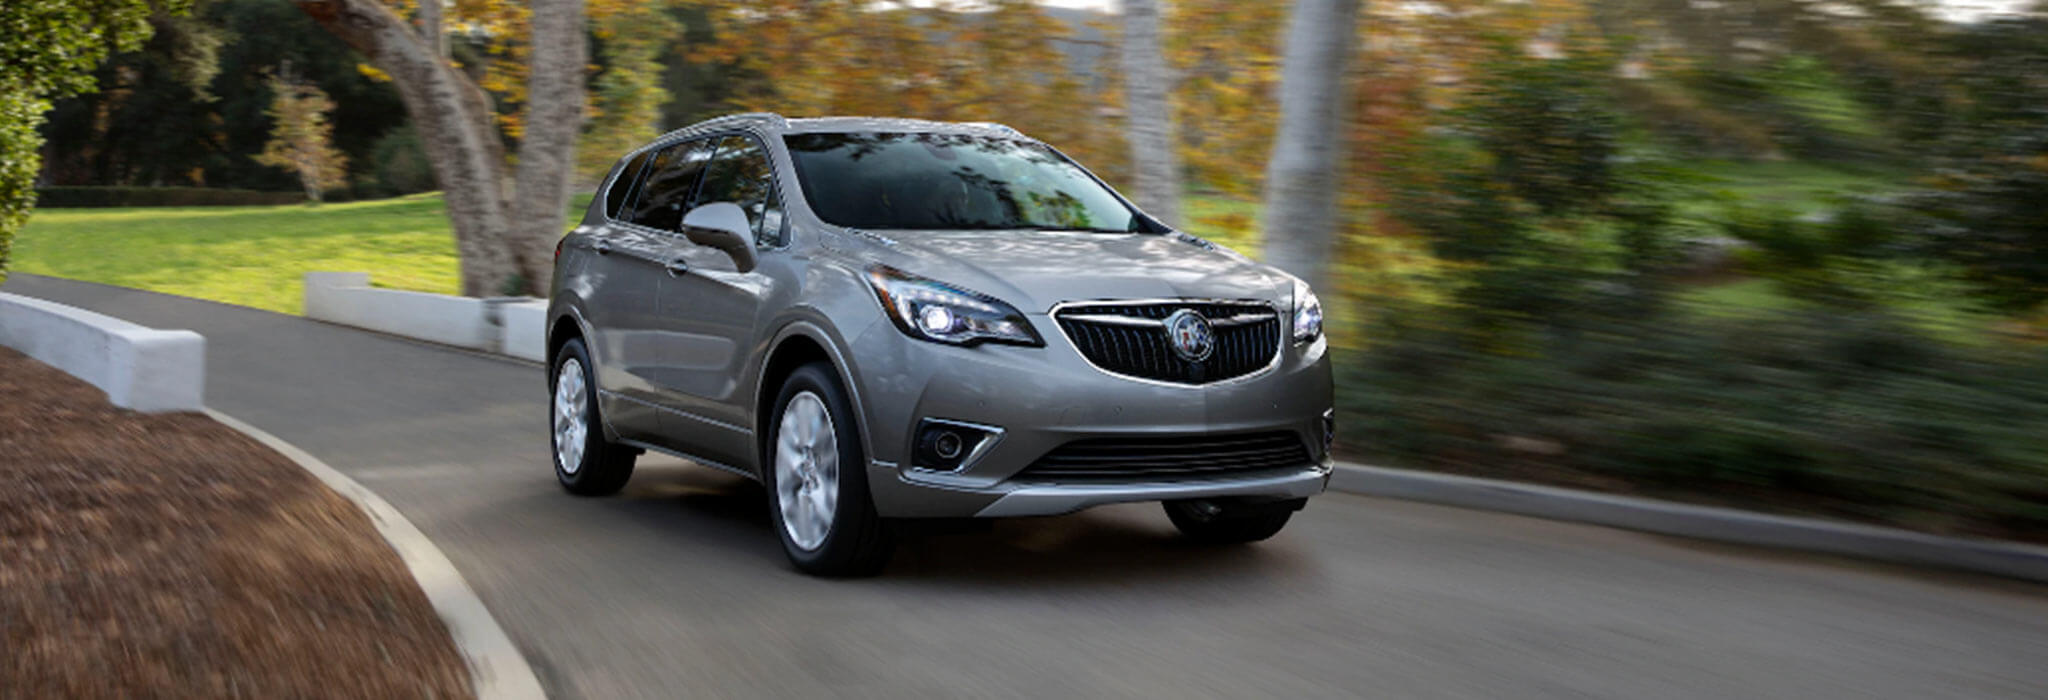 2020 Buick Envision SUV in New Iberia, Louisiana